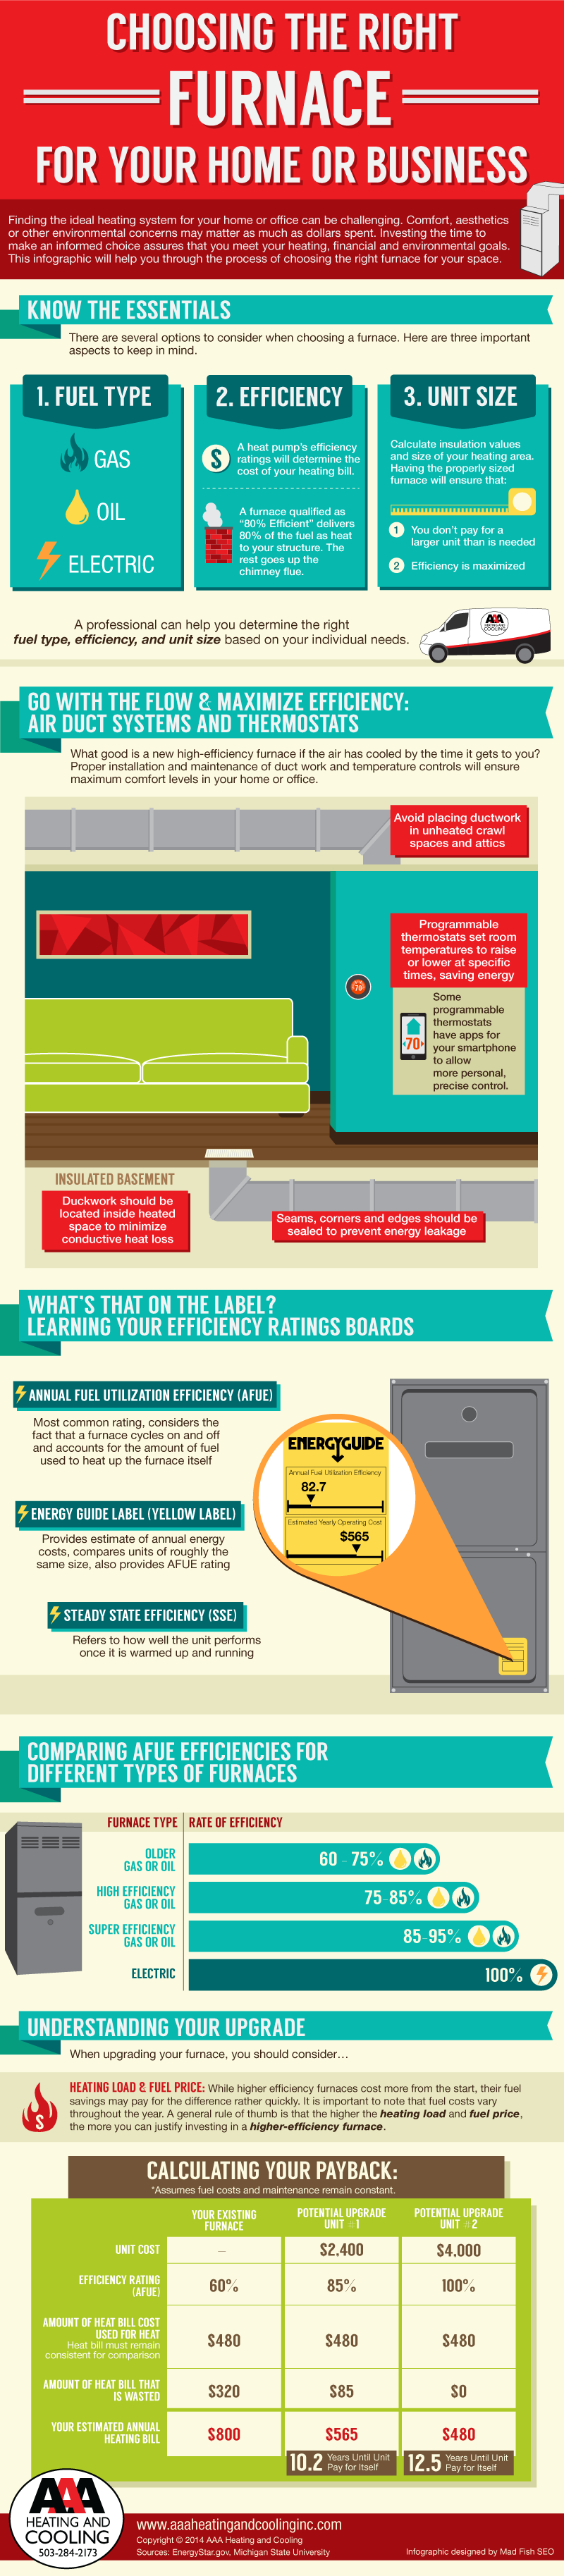 Choosing The Right Furnace For Your Home Or Business Infographic